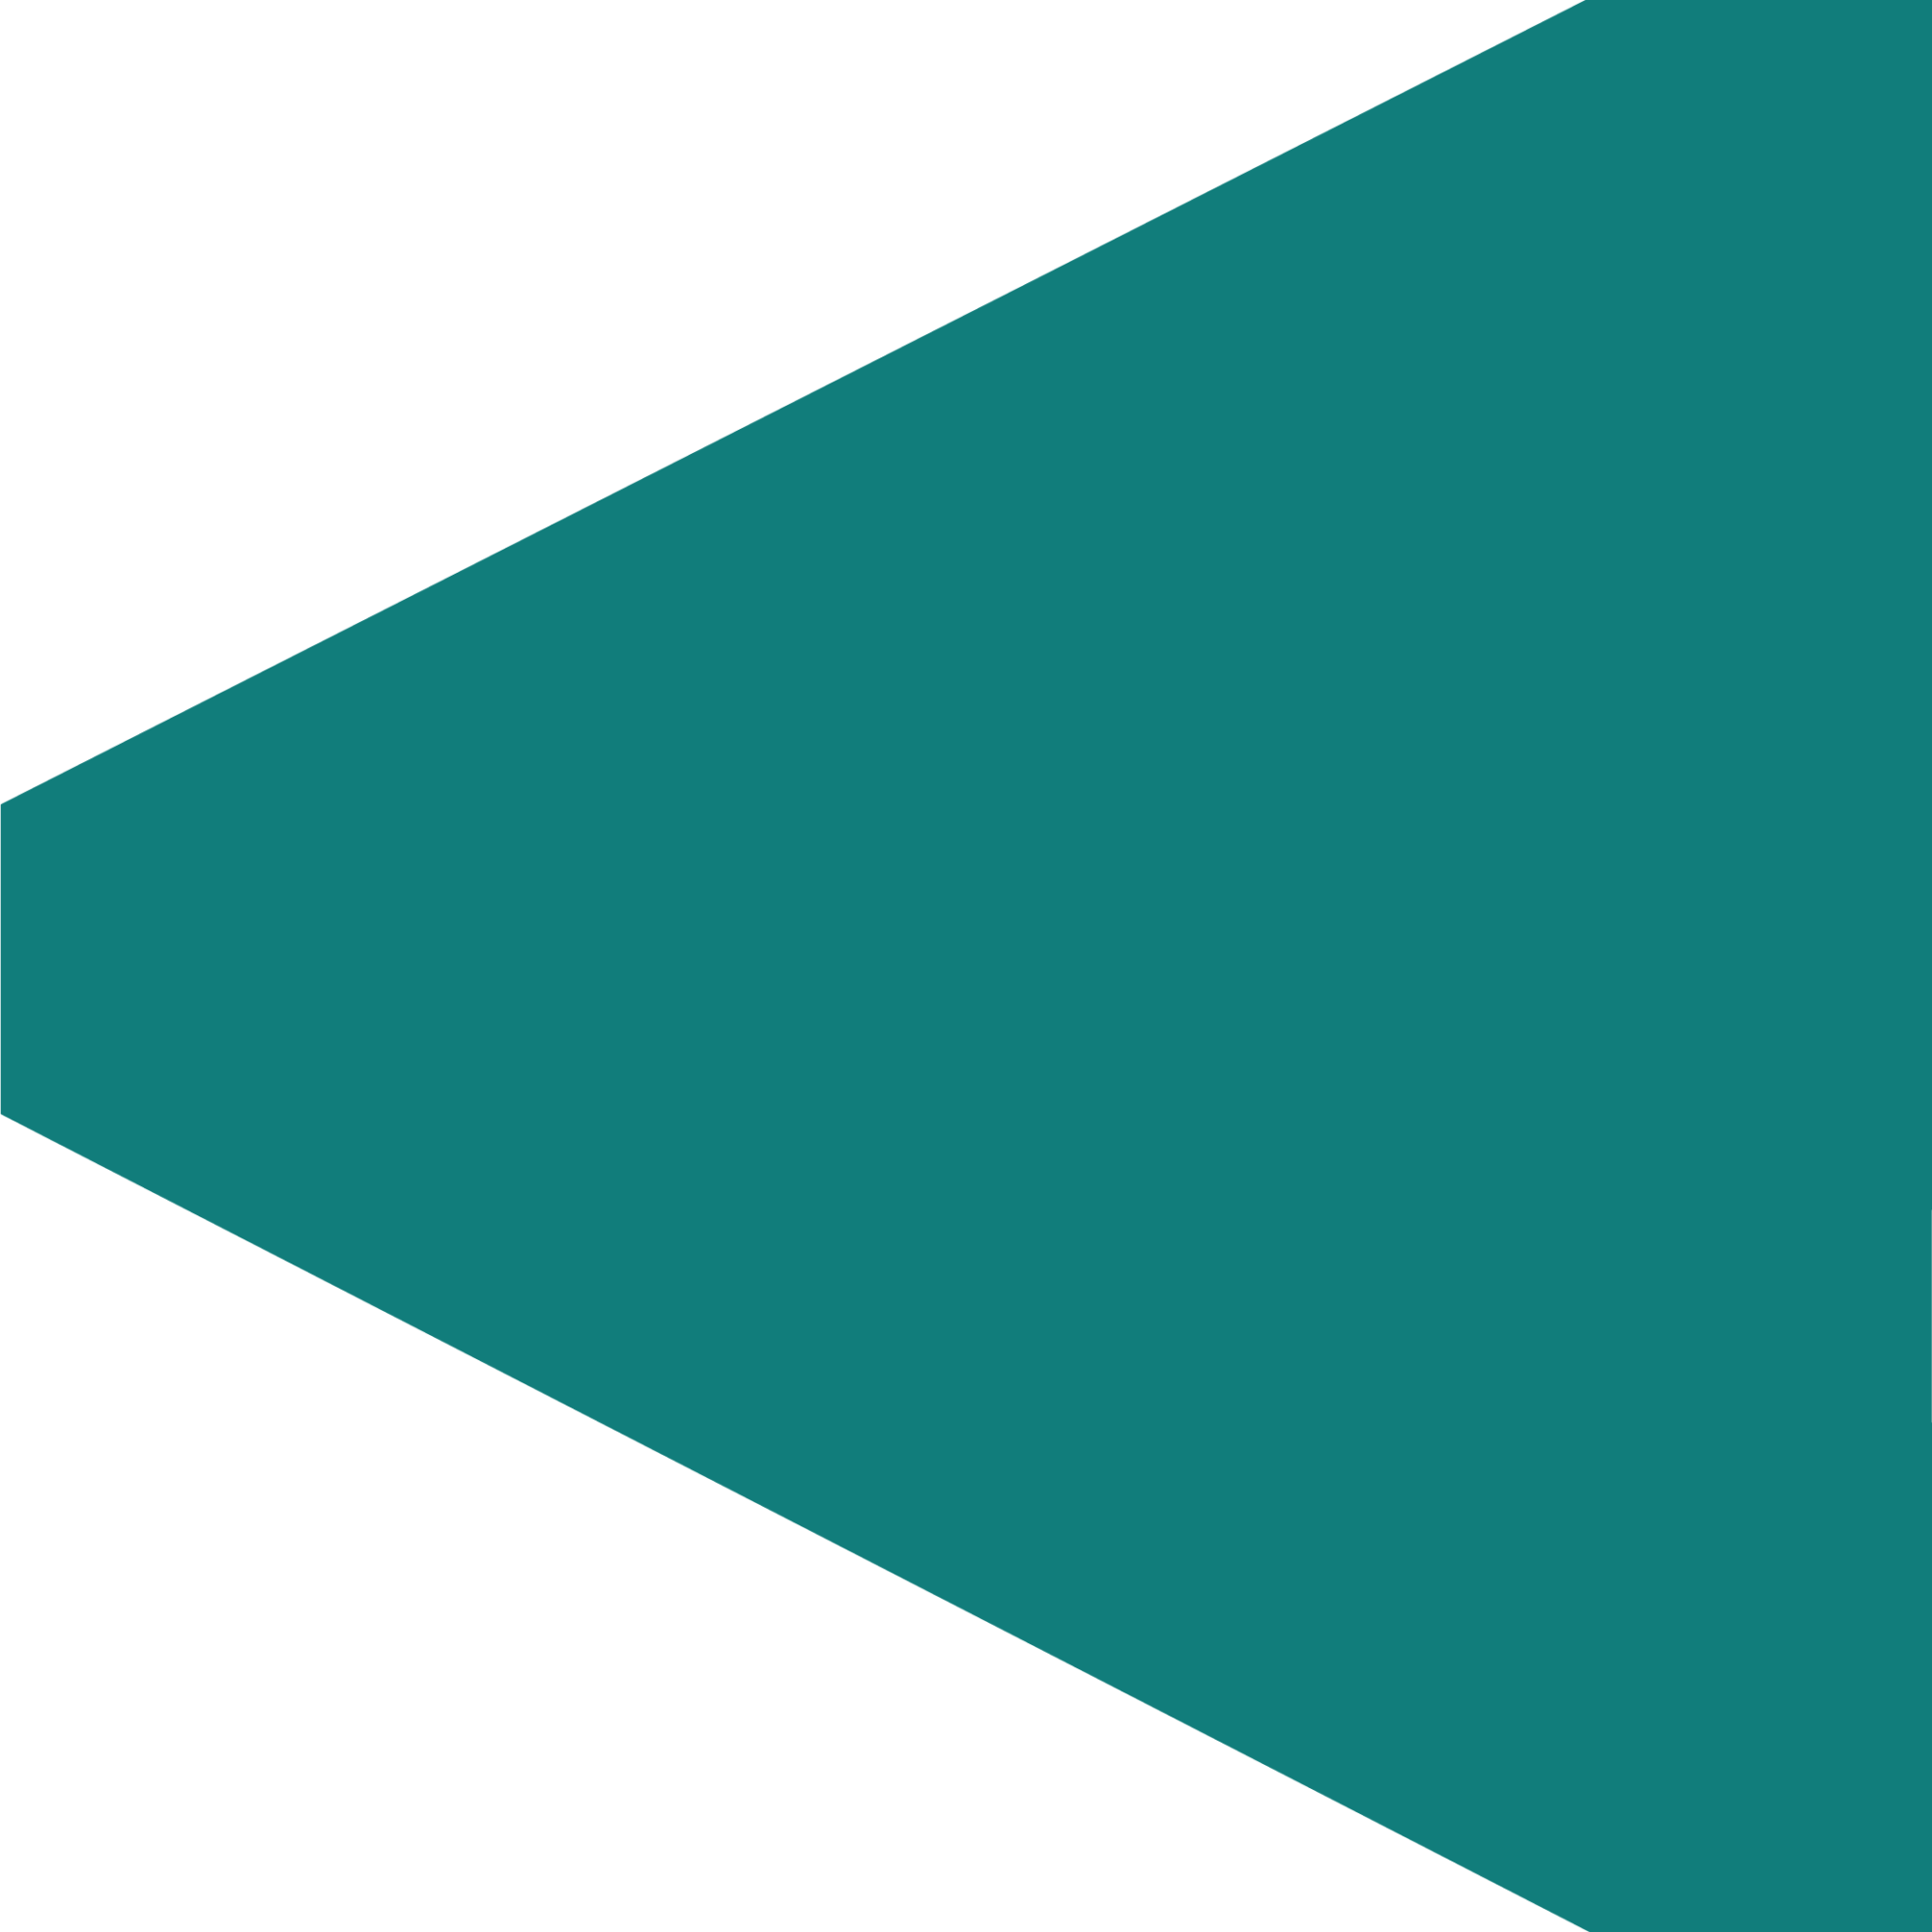 trapezoid_g_r_to_l